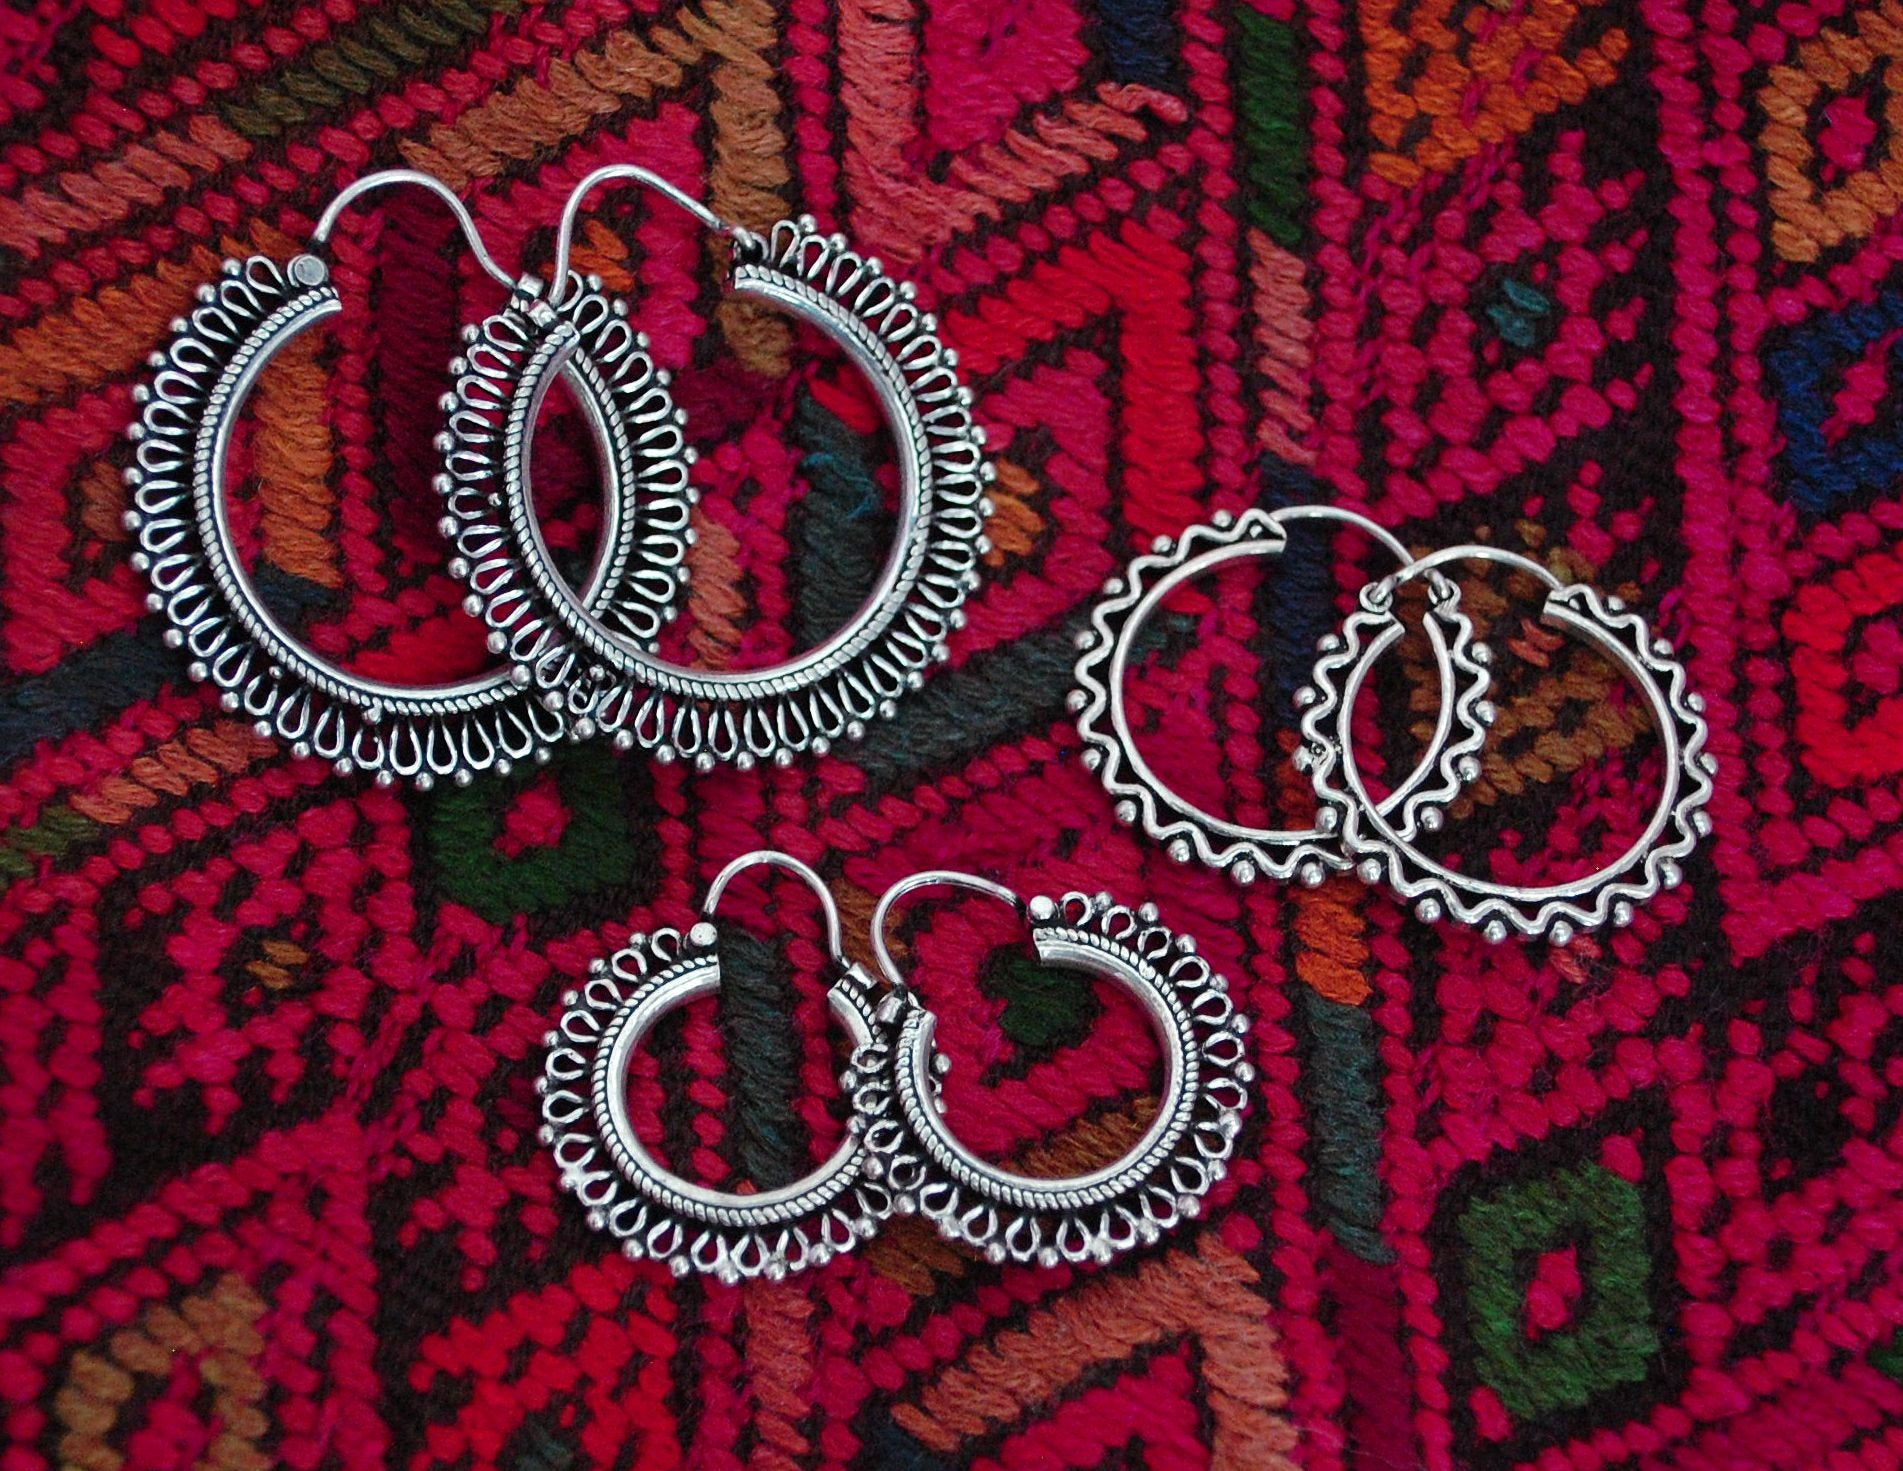 Rajasthani Silver Hoop Earrings - Small - Sterling Silver Hoop Earrings from India - Ethnic Sterling Silver Hoop Earrings - Rajasthan Silver